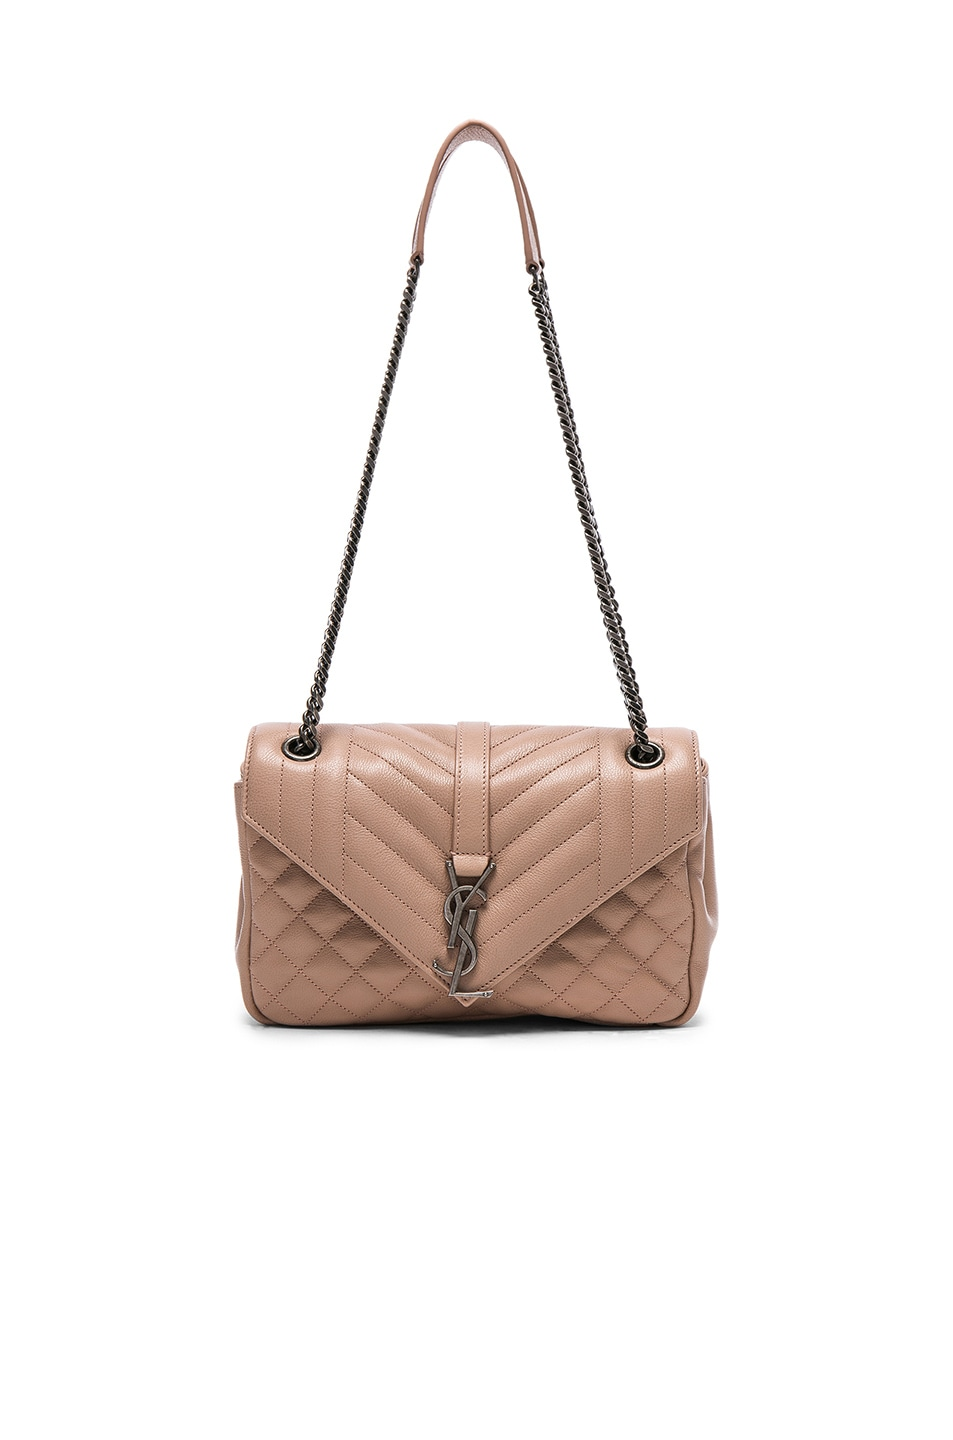 Image 1 of Saint Laurent Medium Envelope Chain Bag in Nude Pink